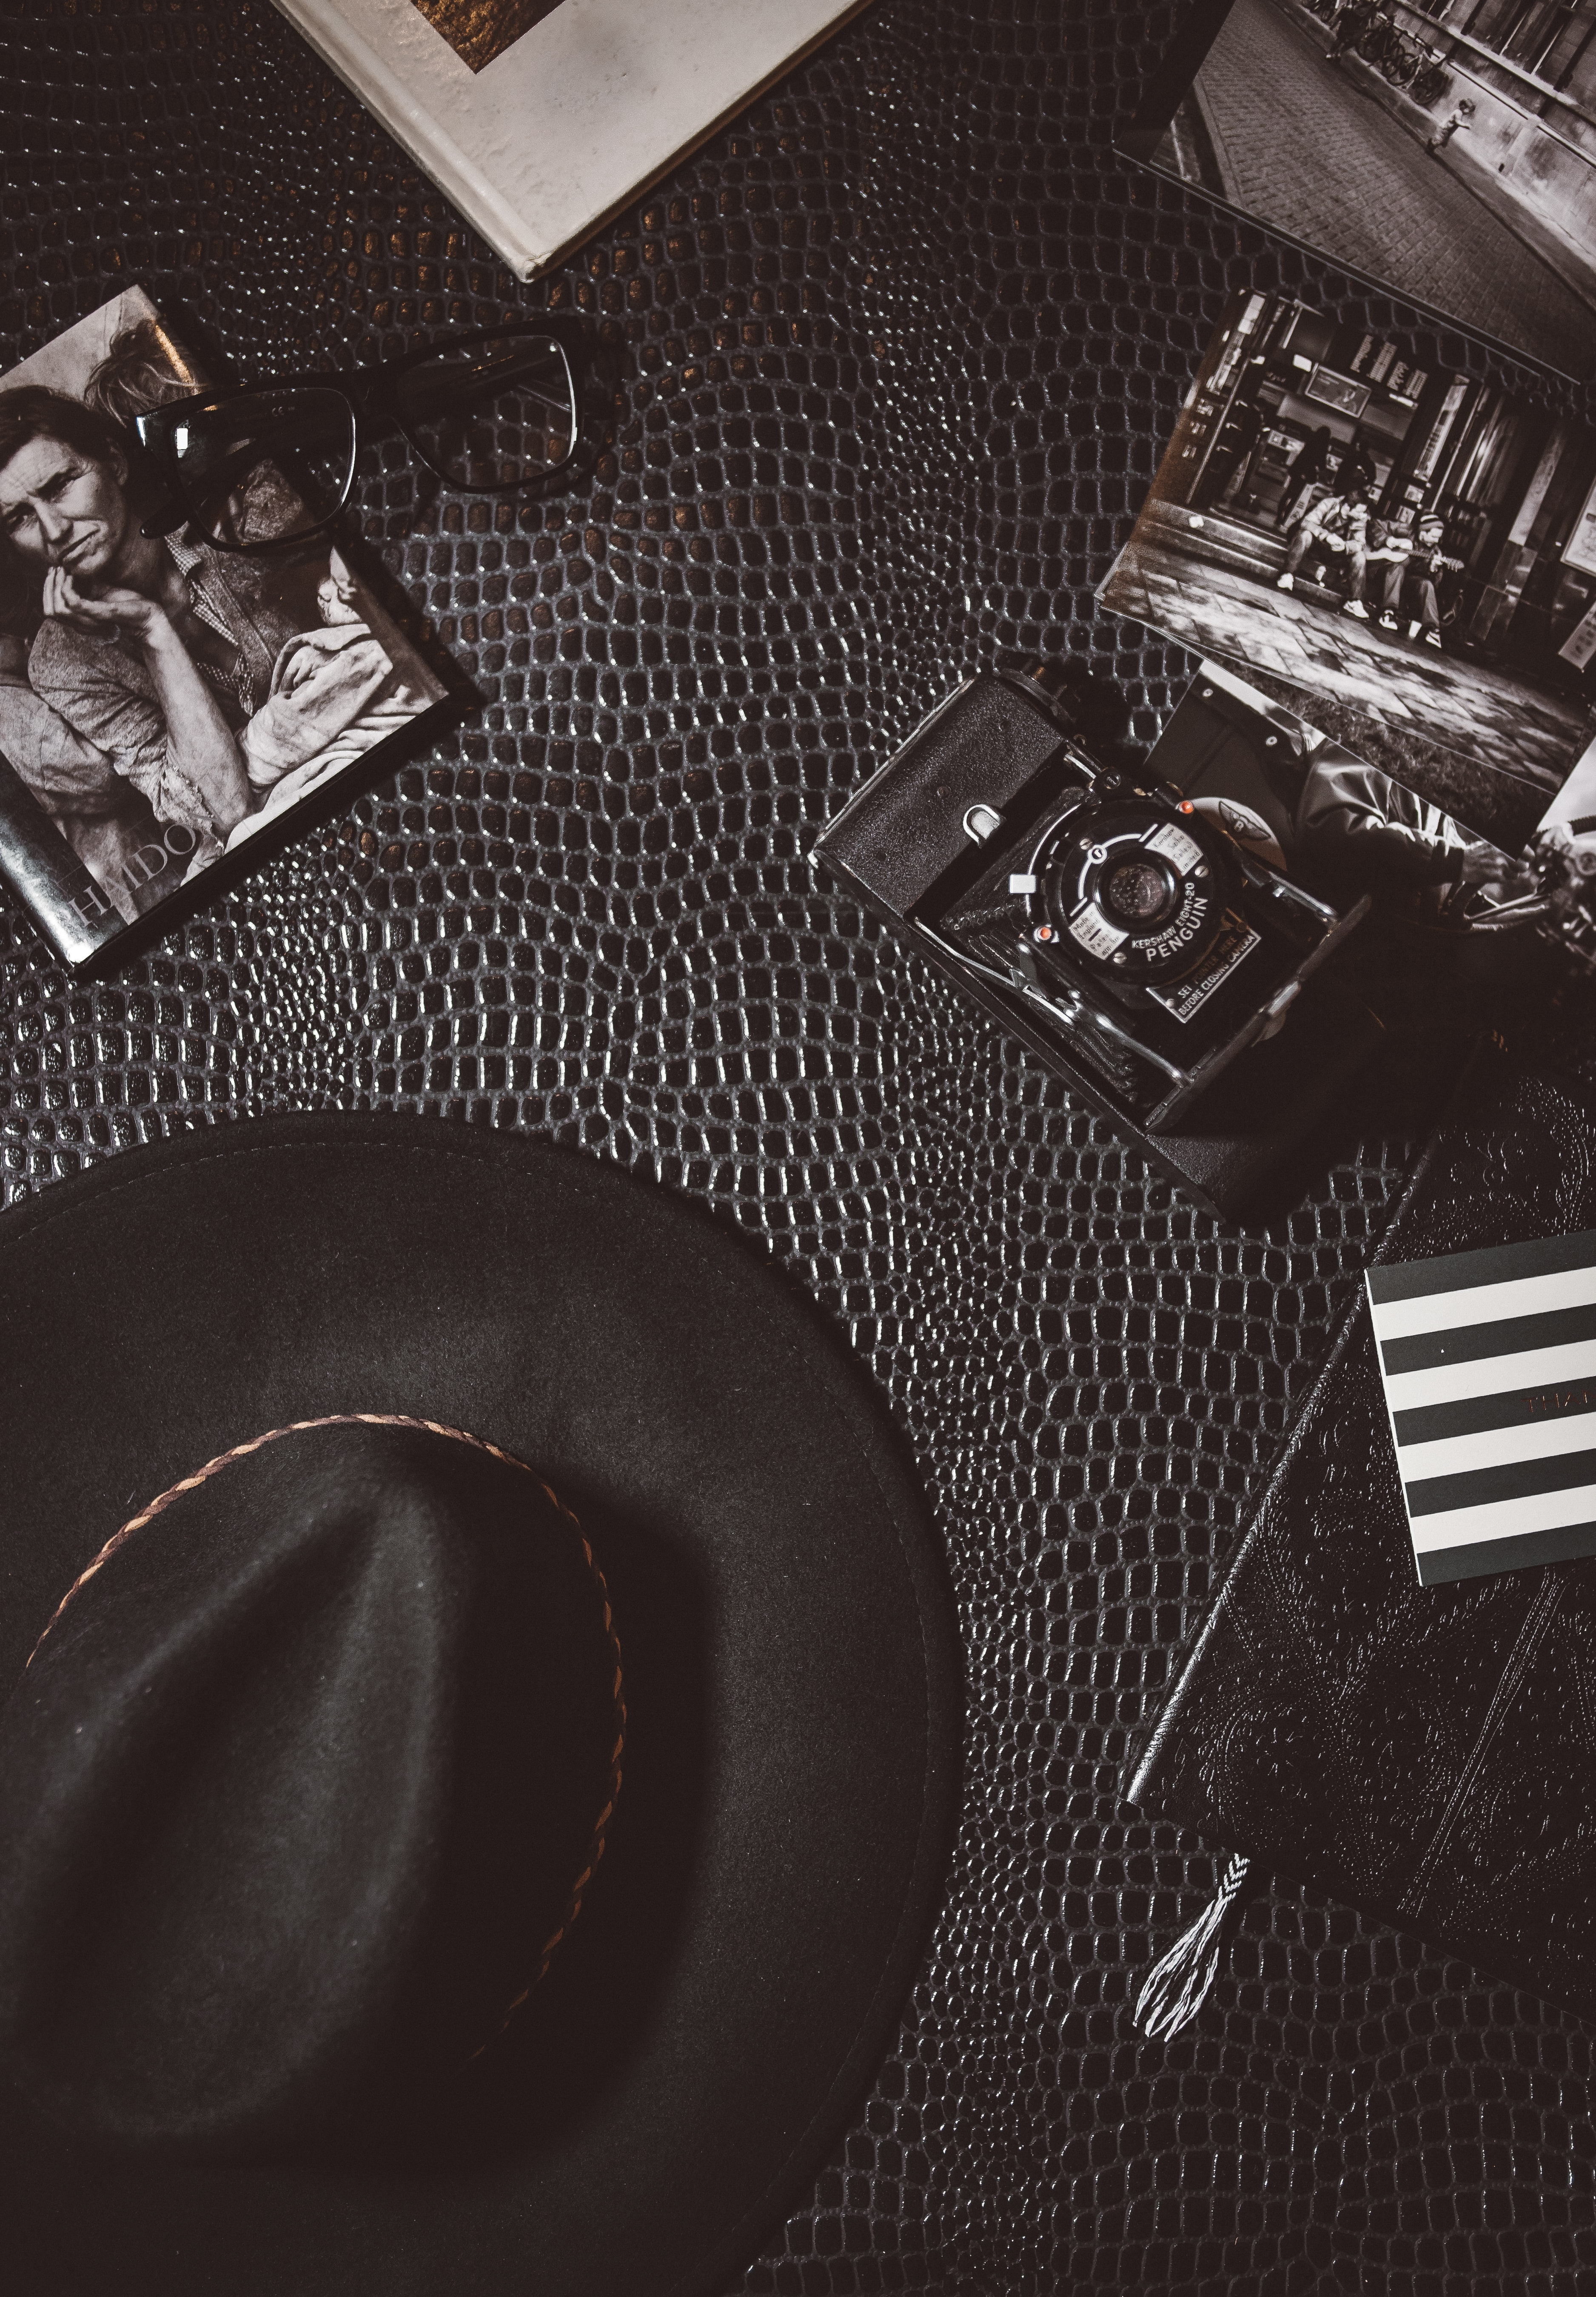 Vintage shot of hat, camera, glasses and monochrome photos lying on leather surface